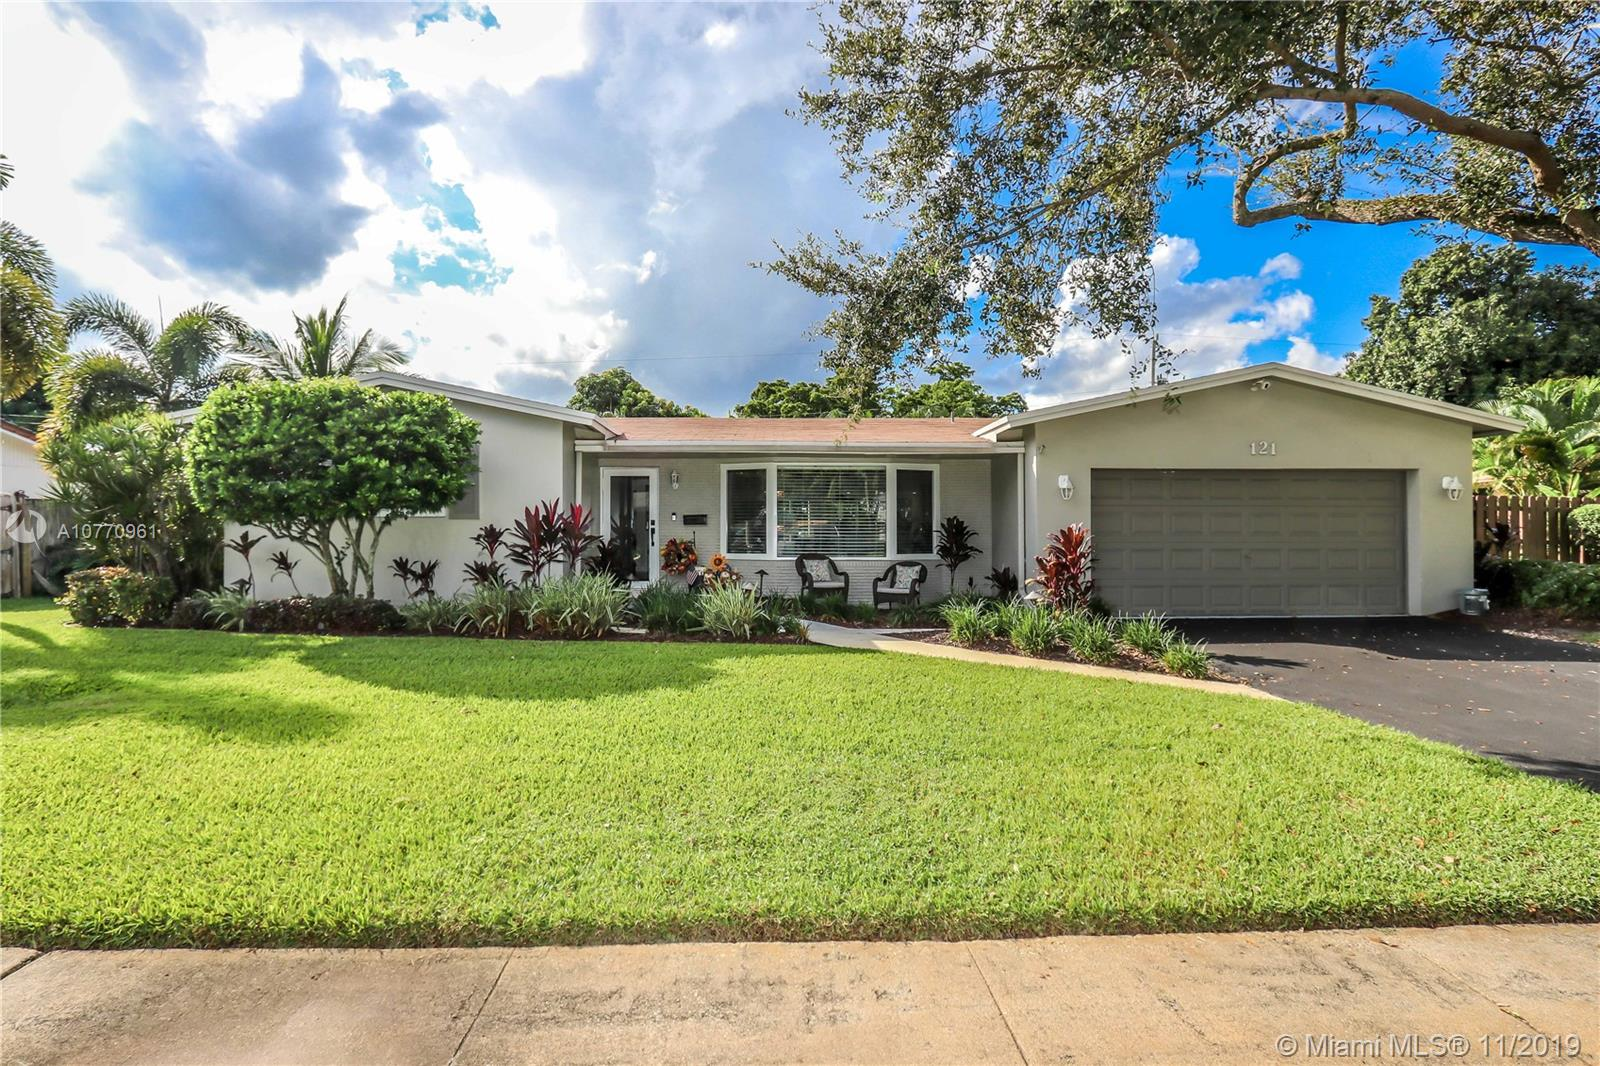 121 SW 52nd Ter, Plantation, FL 33317